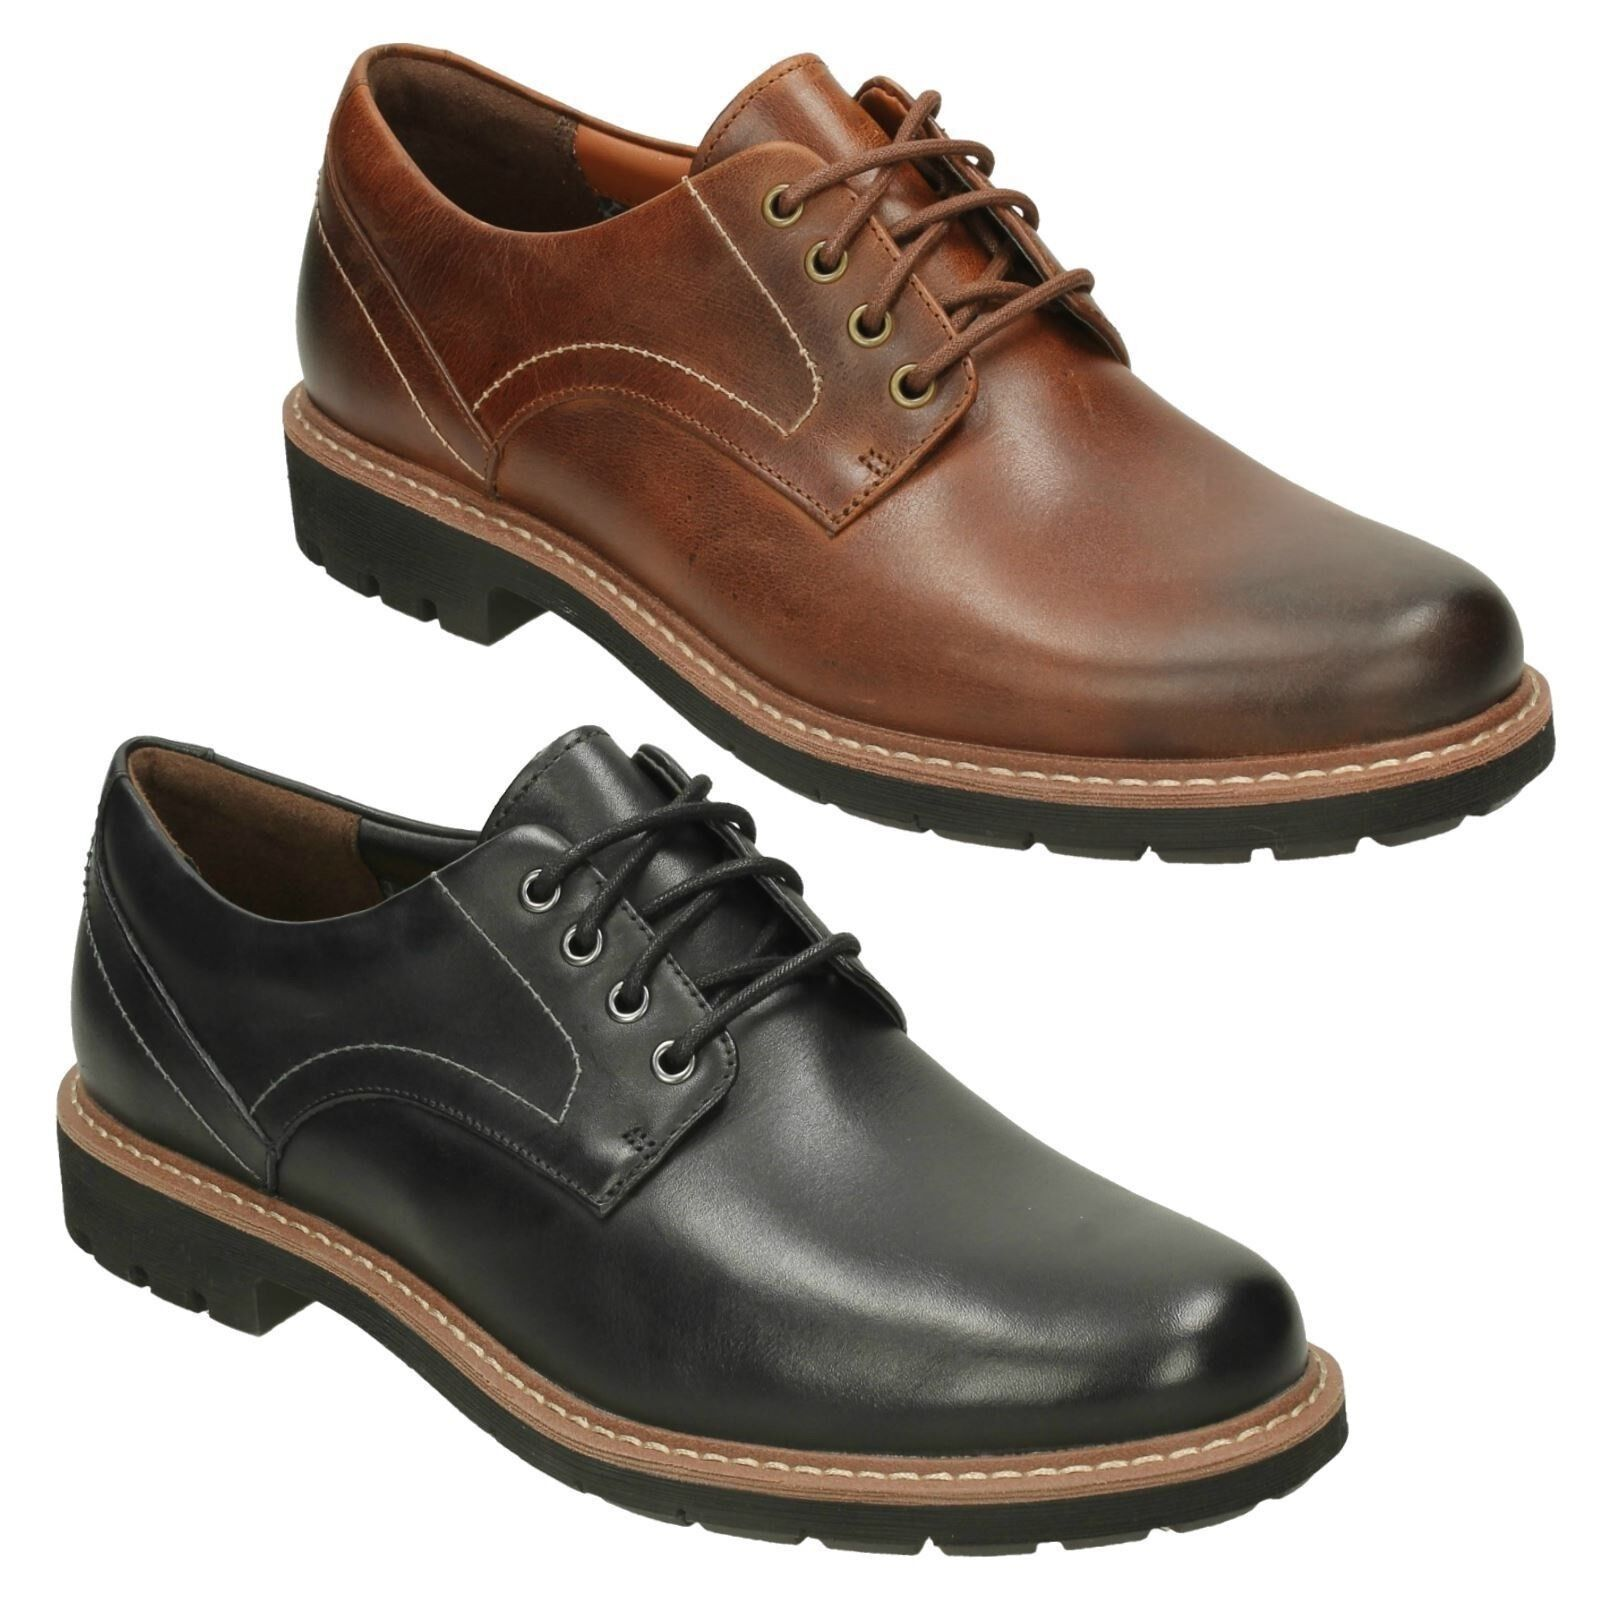 BATCOMBE HALL MENS CLARKS LEATHER CUSHION PLUS FORMAL SMART LACE UP SHOES SIZE